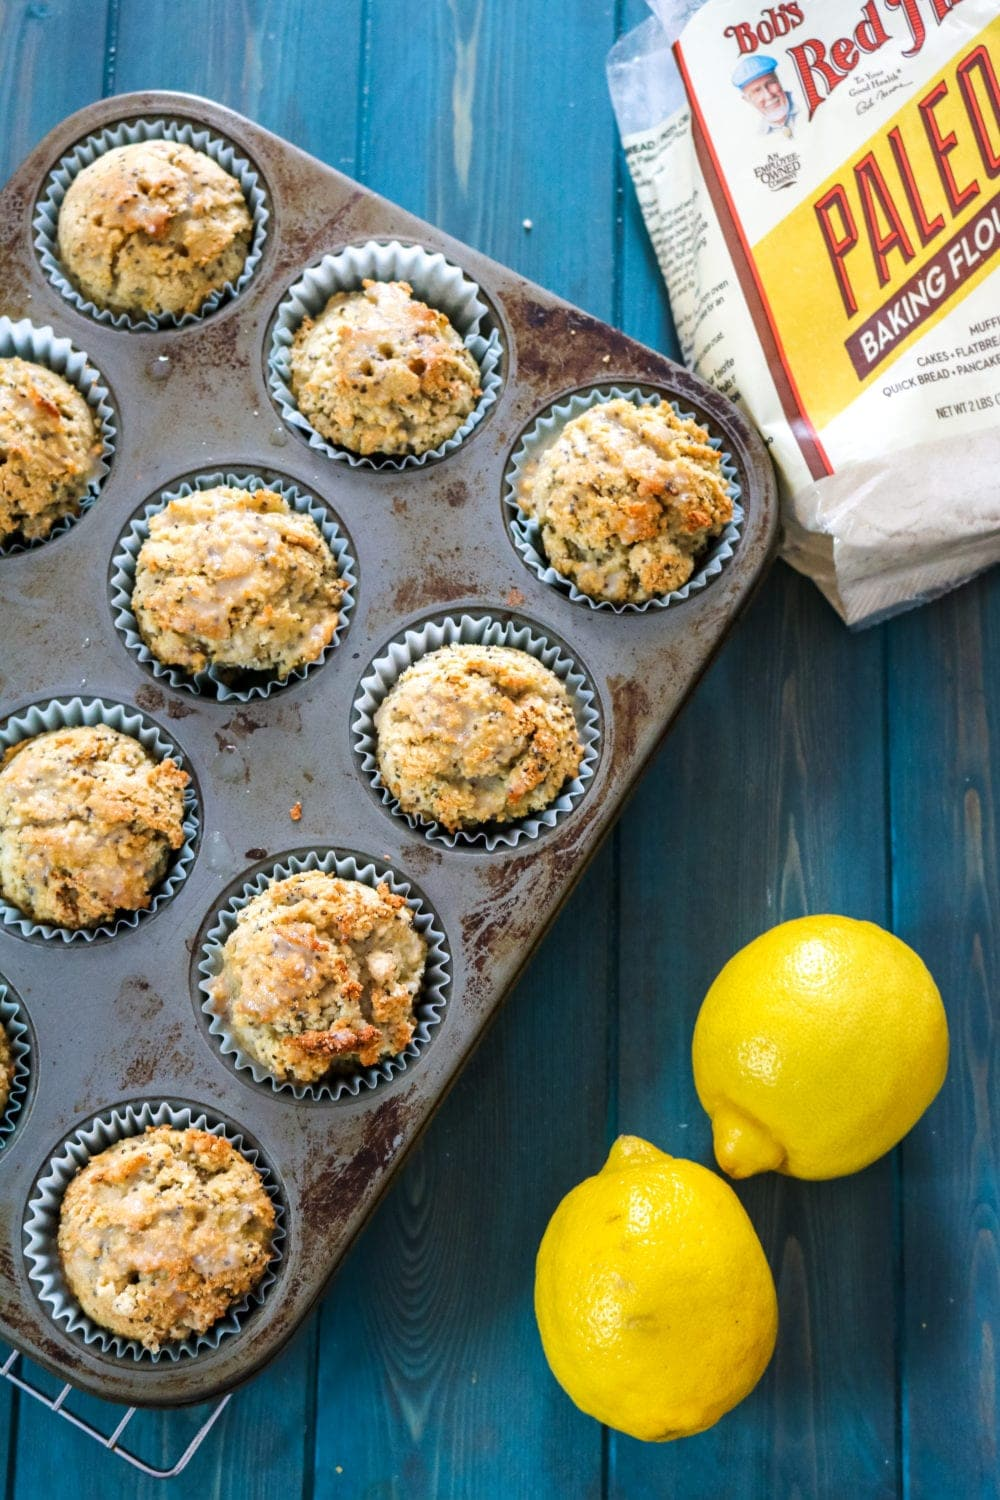 Coconut Lemon Muffins baked in muffin cup with paleo flour blend next to baking tray